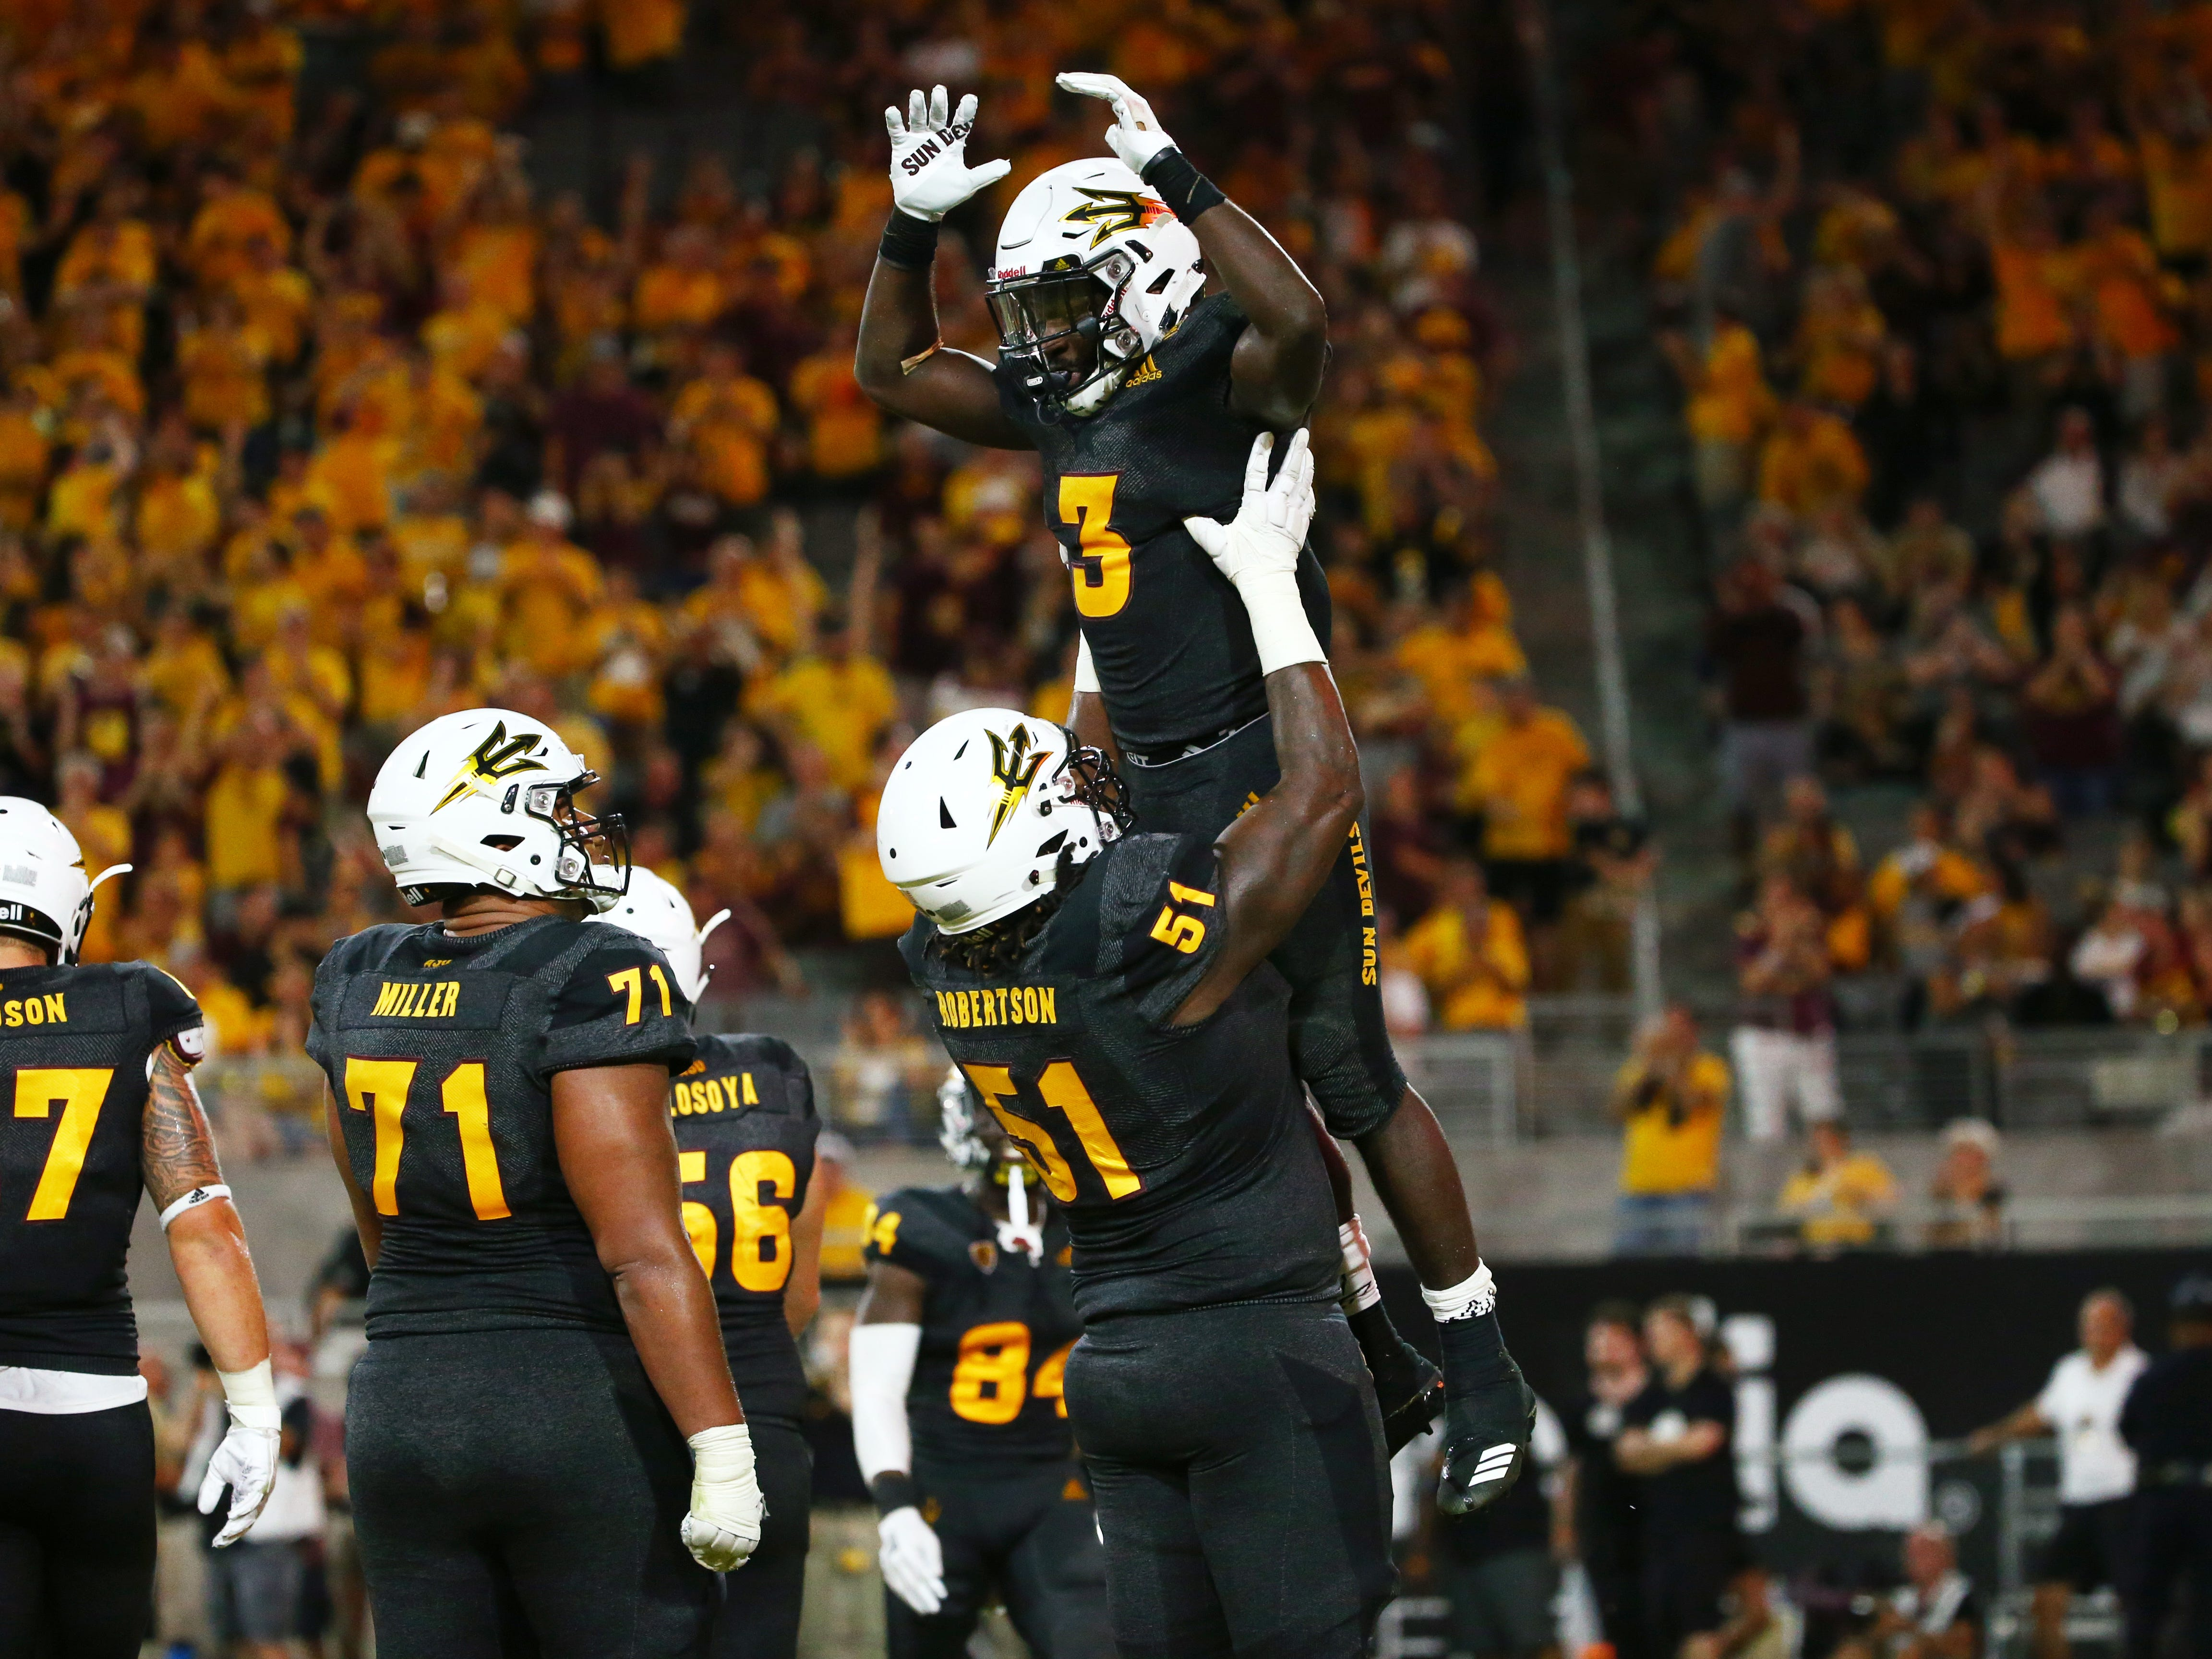 Arizona State running back Eno Benjamin celebrates his touchdown against Oregon State in the second half on Sep. 29, 2018, at Sun Devil Stadium.